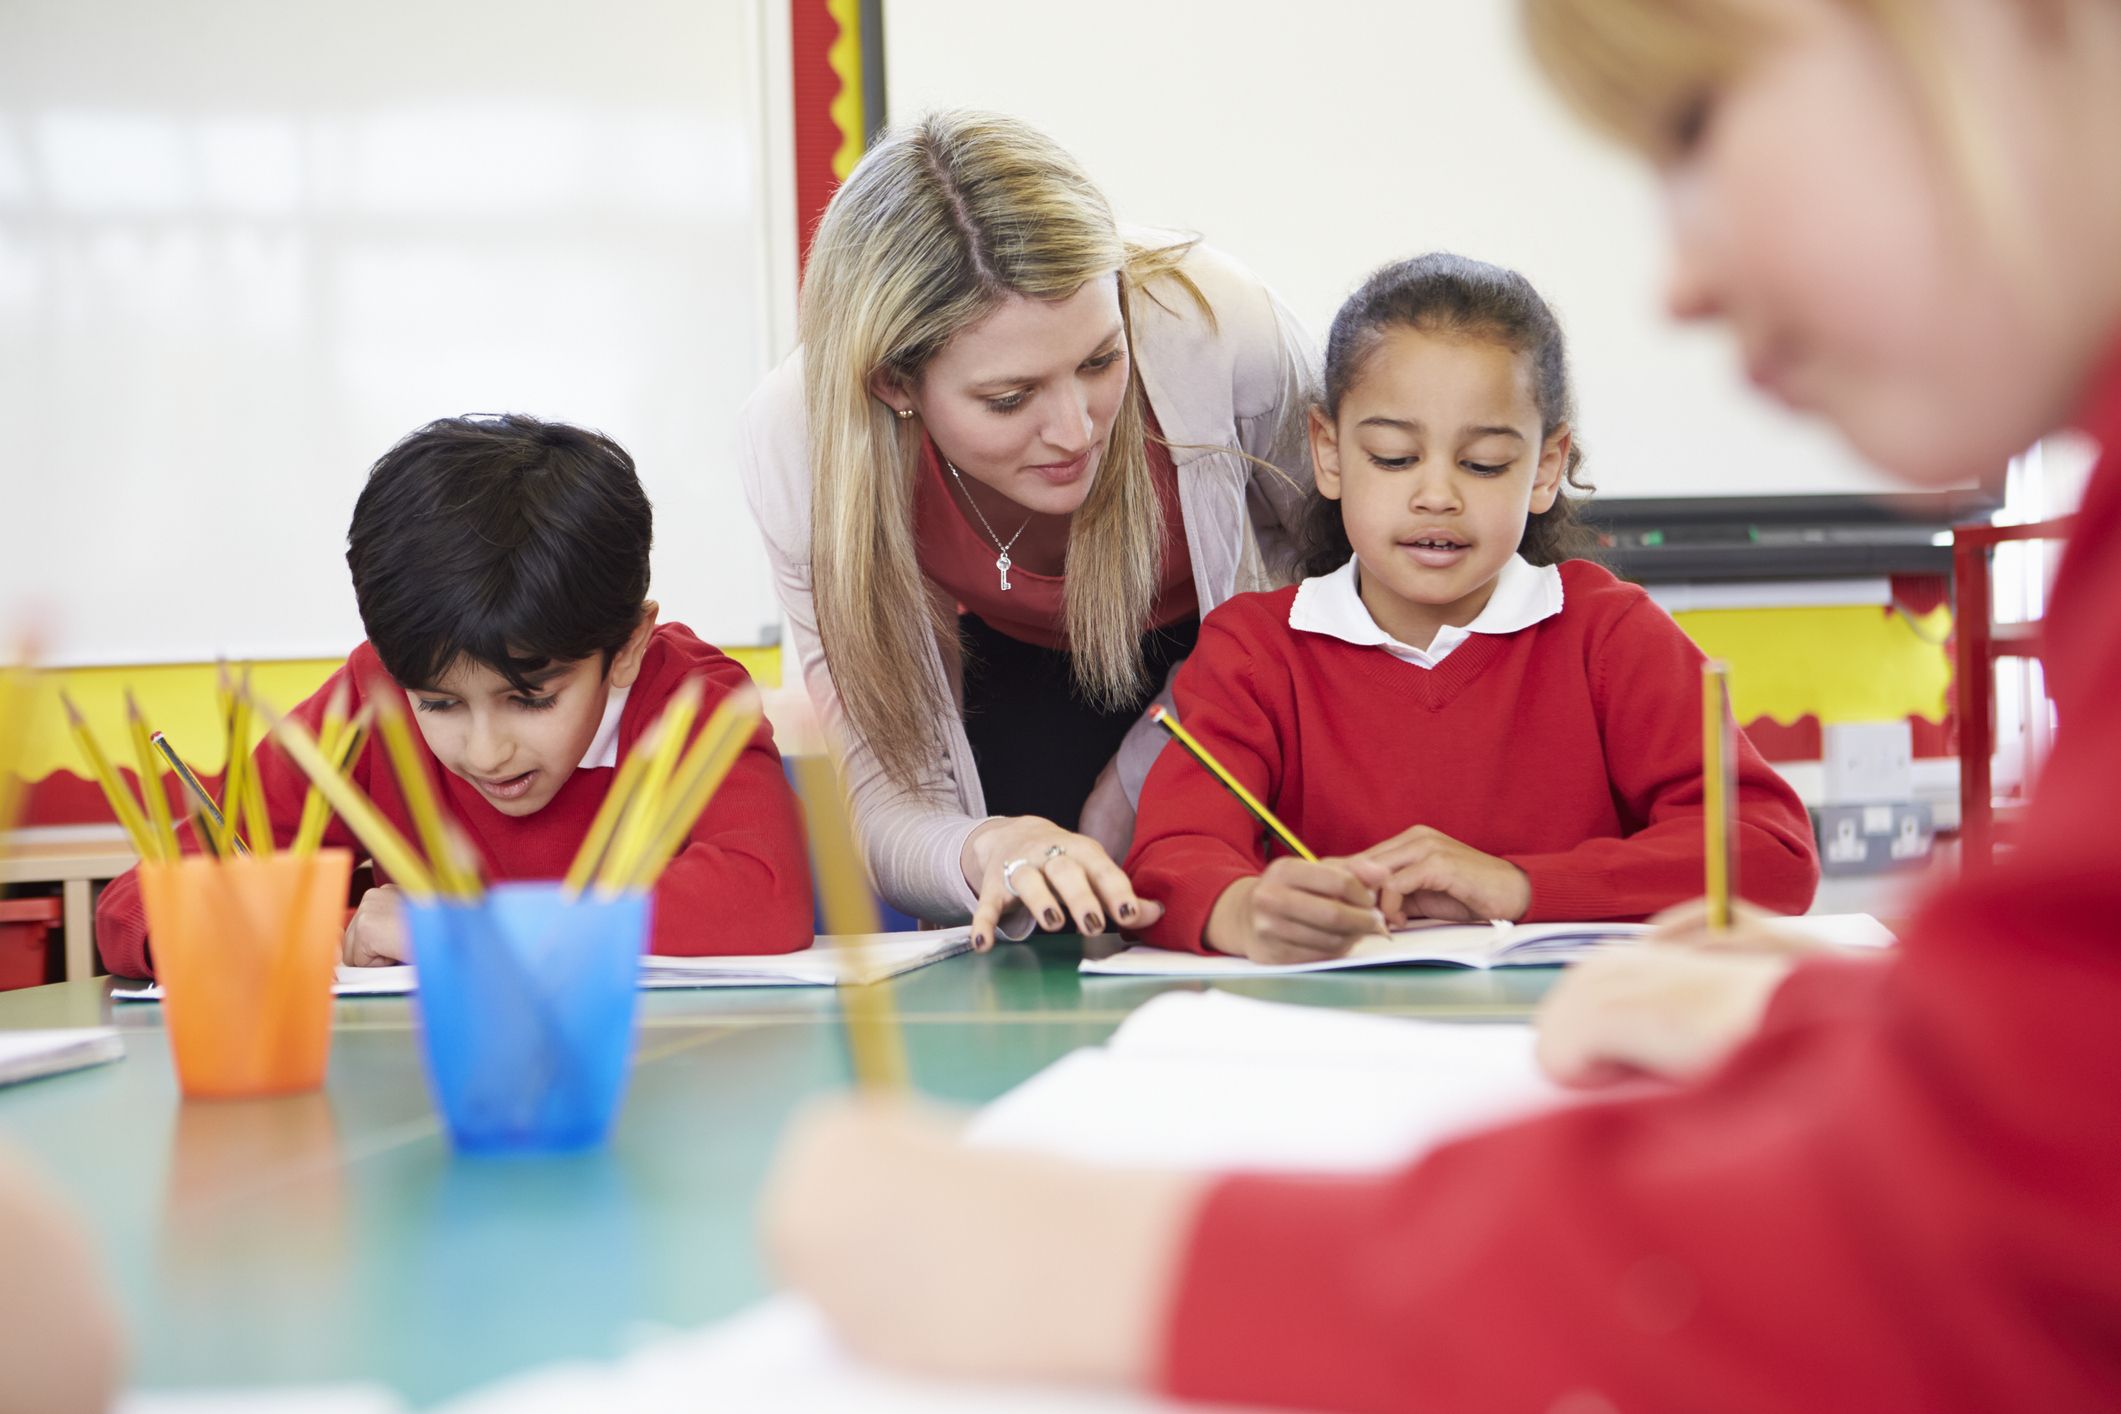 About GKP - We are communications experts with an in-depth knowledge of the education sector.We help educational suppliers, school groups, universities, apprenticeship and professional training providers, edtech businesses, tutoring companies, industry bodies, event organisers and companies looking to improve their reputation through education platforms.